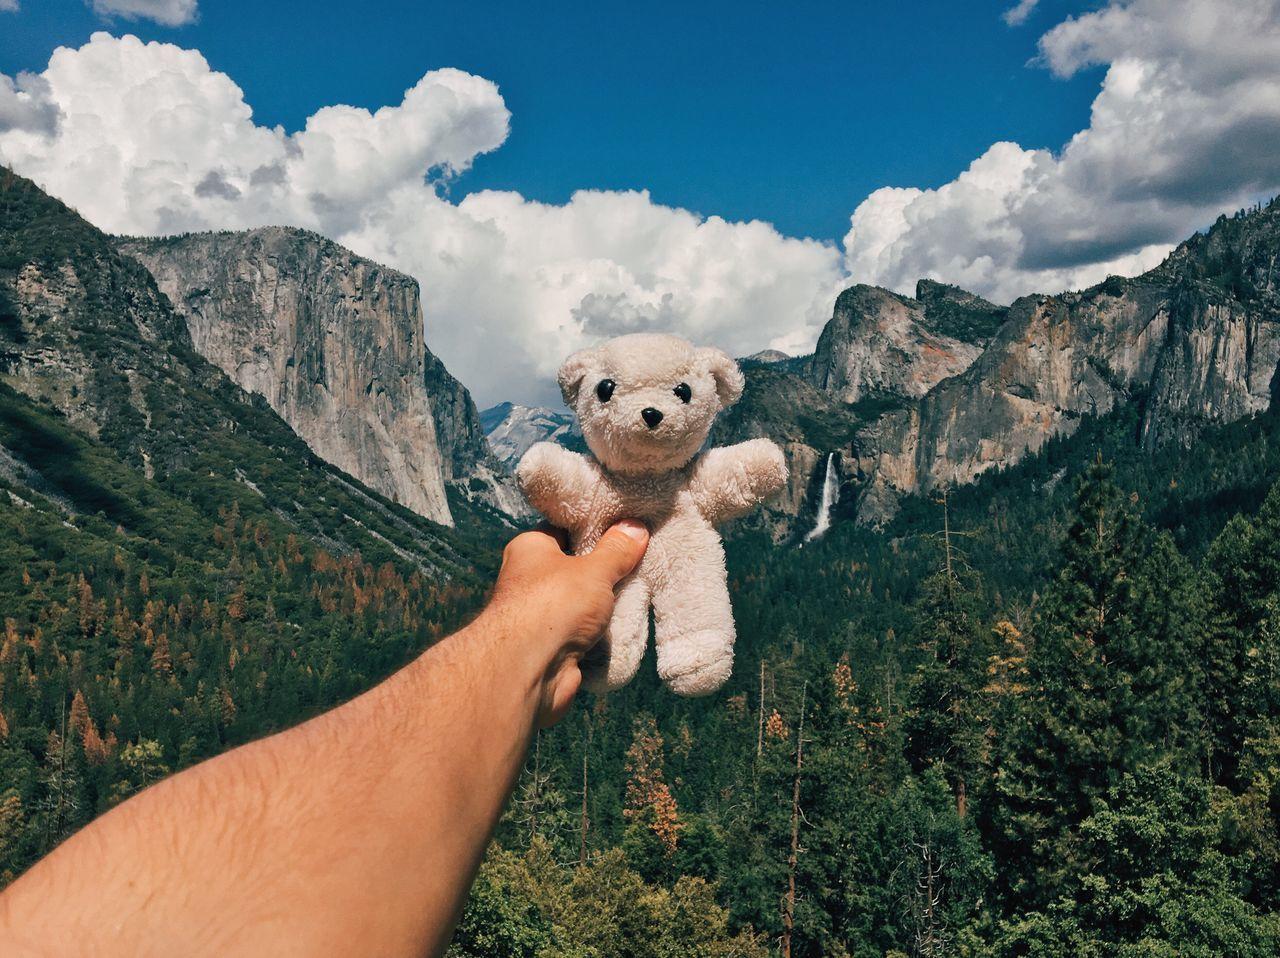 "In 1991, my parents were on a road trip across the U.S. and brought me a white teddy bear from Yosemite National Park as a gift in a bag from the park. I don't have many young childhood memories but I remember this one perfectly. ""Iôzemite"" I've named it, like saying ""Yosemite"" in a wrong way in portuguese, because that's how I read it on the bag. Today, 25 years later, he came back home. 🌲🐻🌲 Lieblingsteil Human Hand Human Body Part Cloud - Sky One Person Sky Holding Personal Perspective Outdoors Day Men Mammal Building Exterior Mountain Architecture Real People One Man Only Nature Domestic Animals Beauty In Nature People Teddy Bear Childhood Memories Toys"